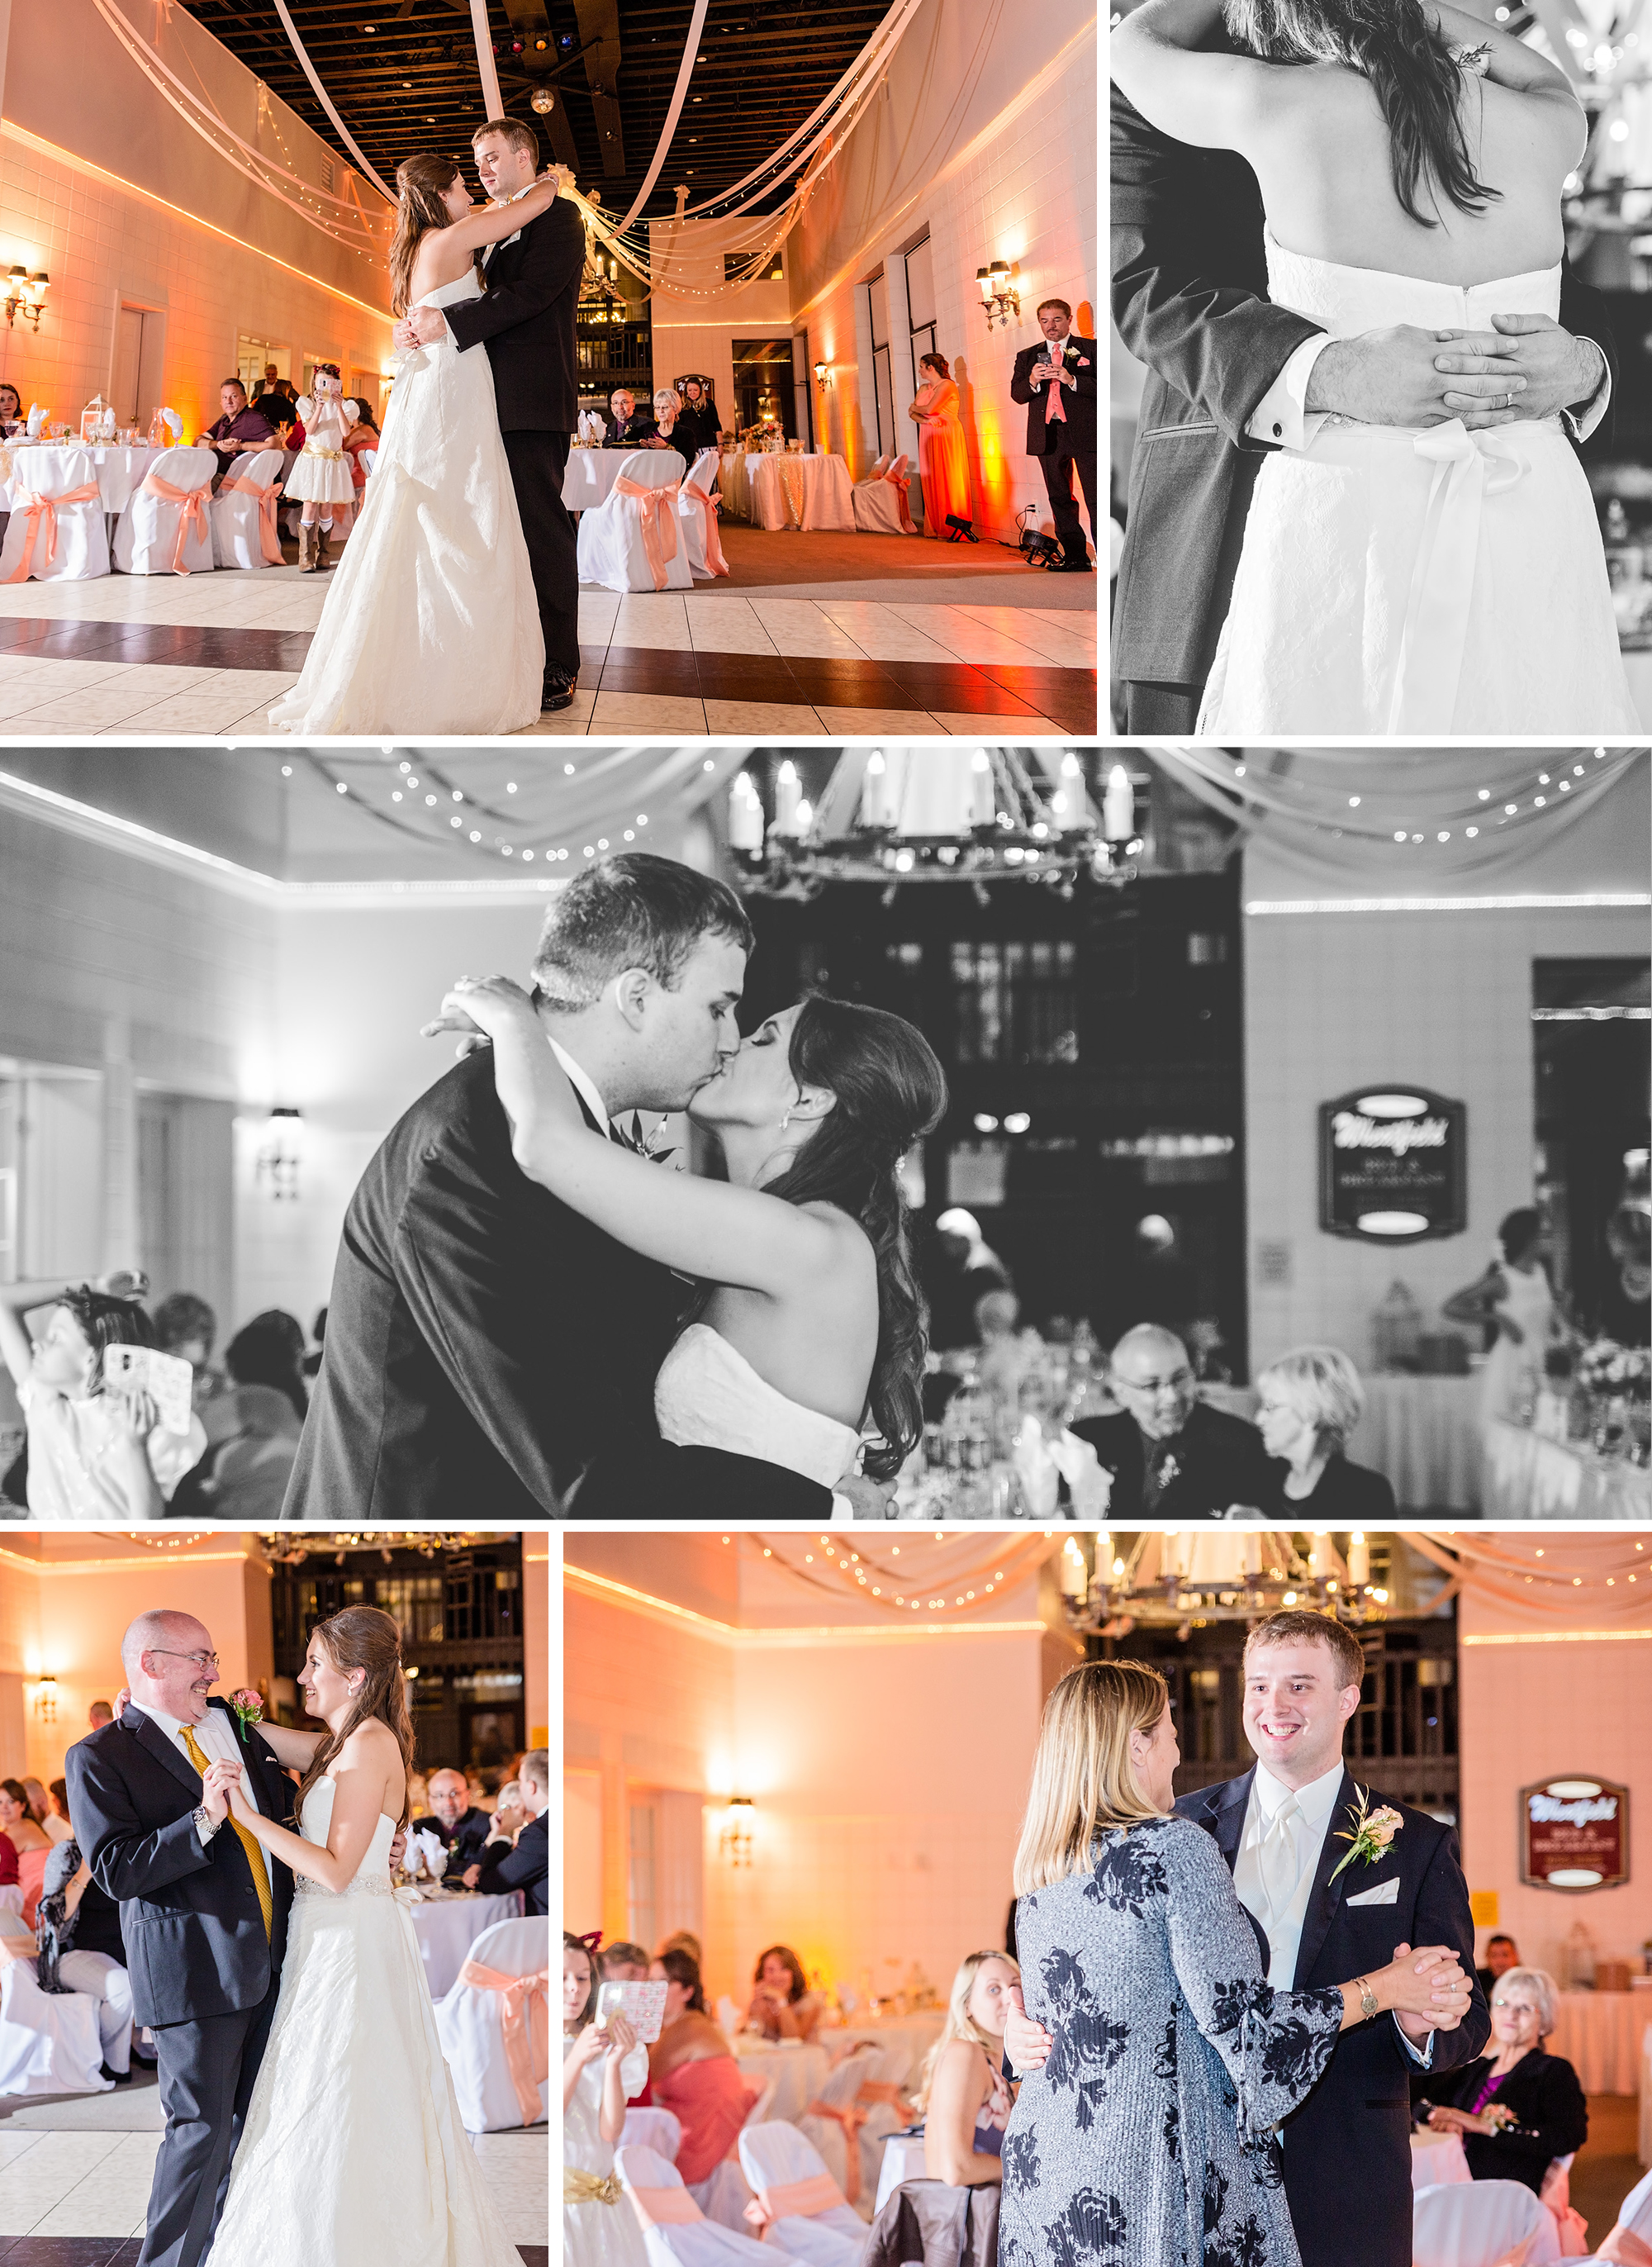 Hart_wedding_blogCollage-8.jpg